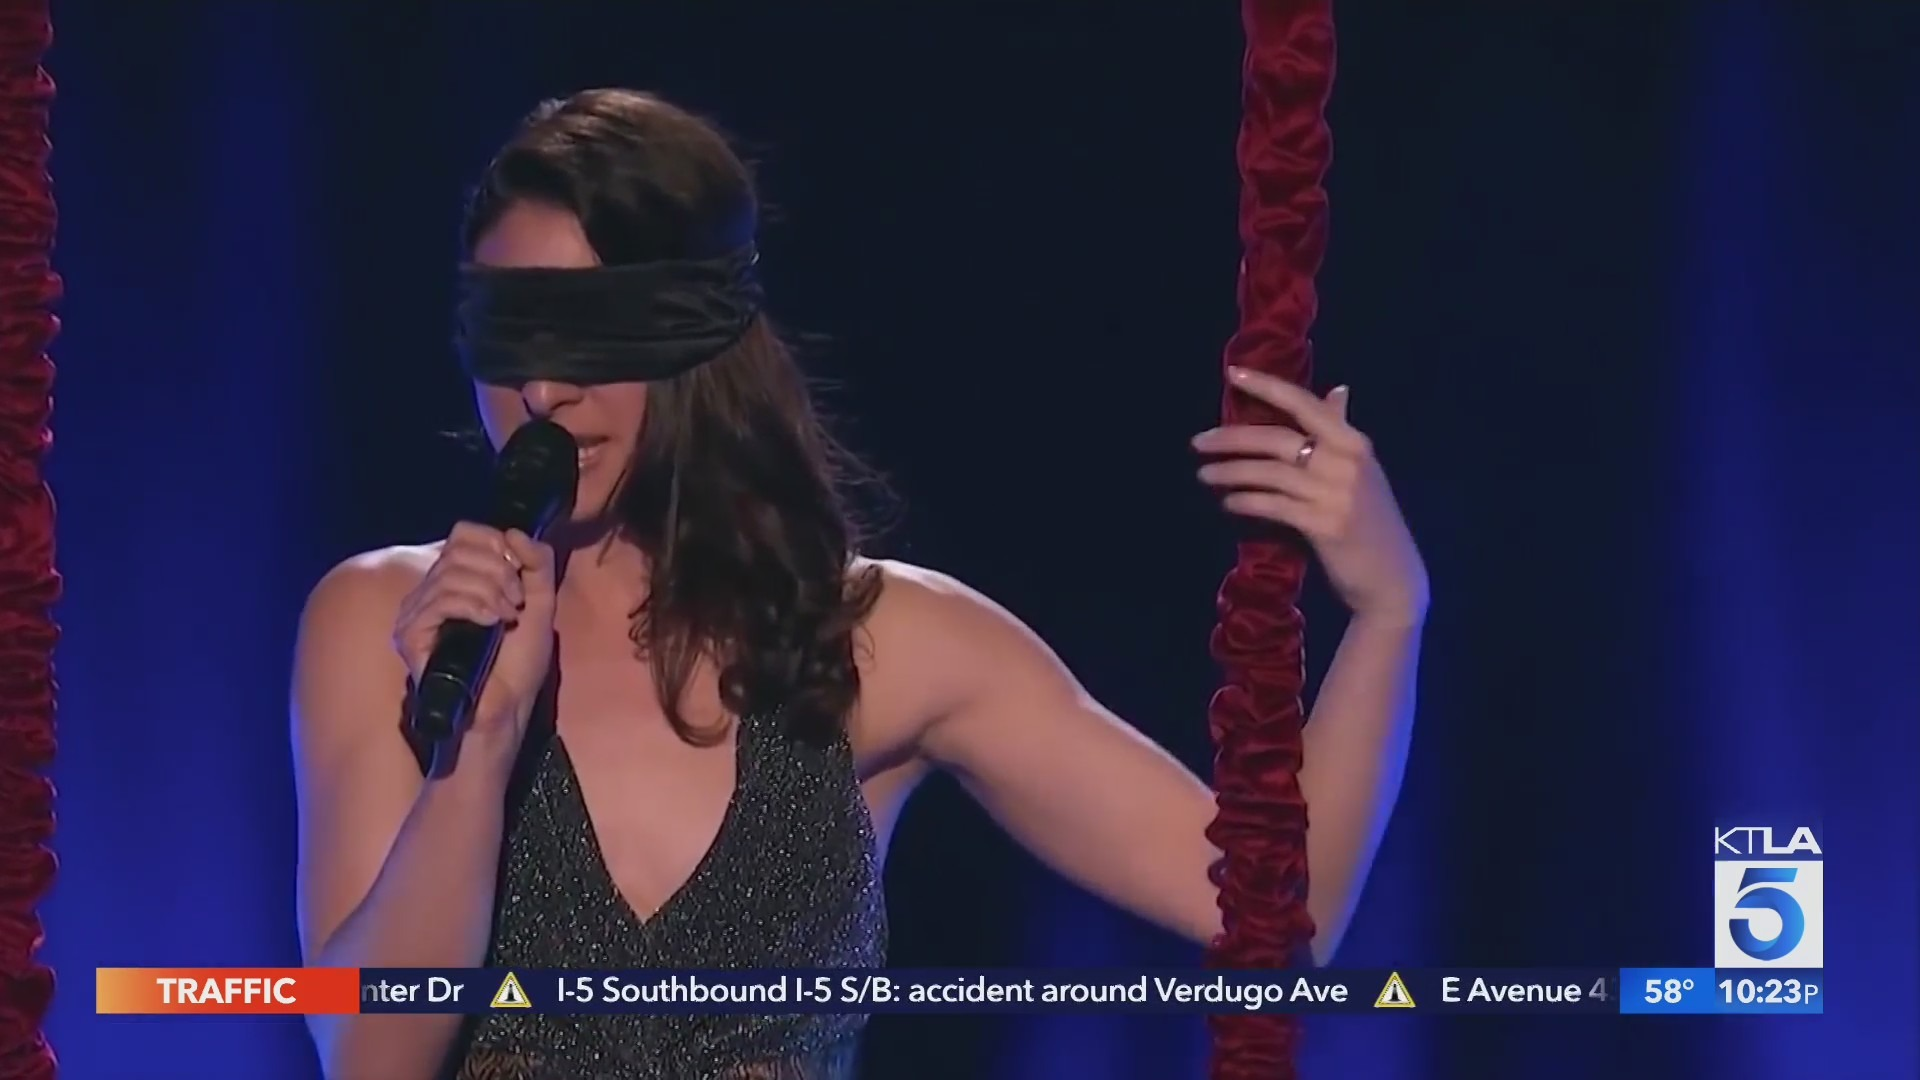 'The Clairvoyants' first wowed audiences on 'America's Got Talent' now they chat to us about upcoming virtual show